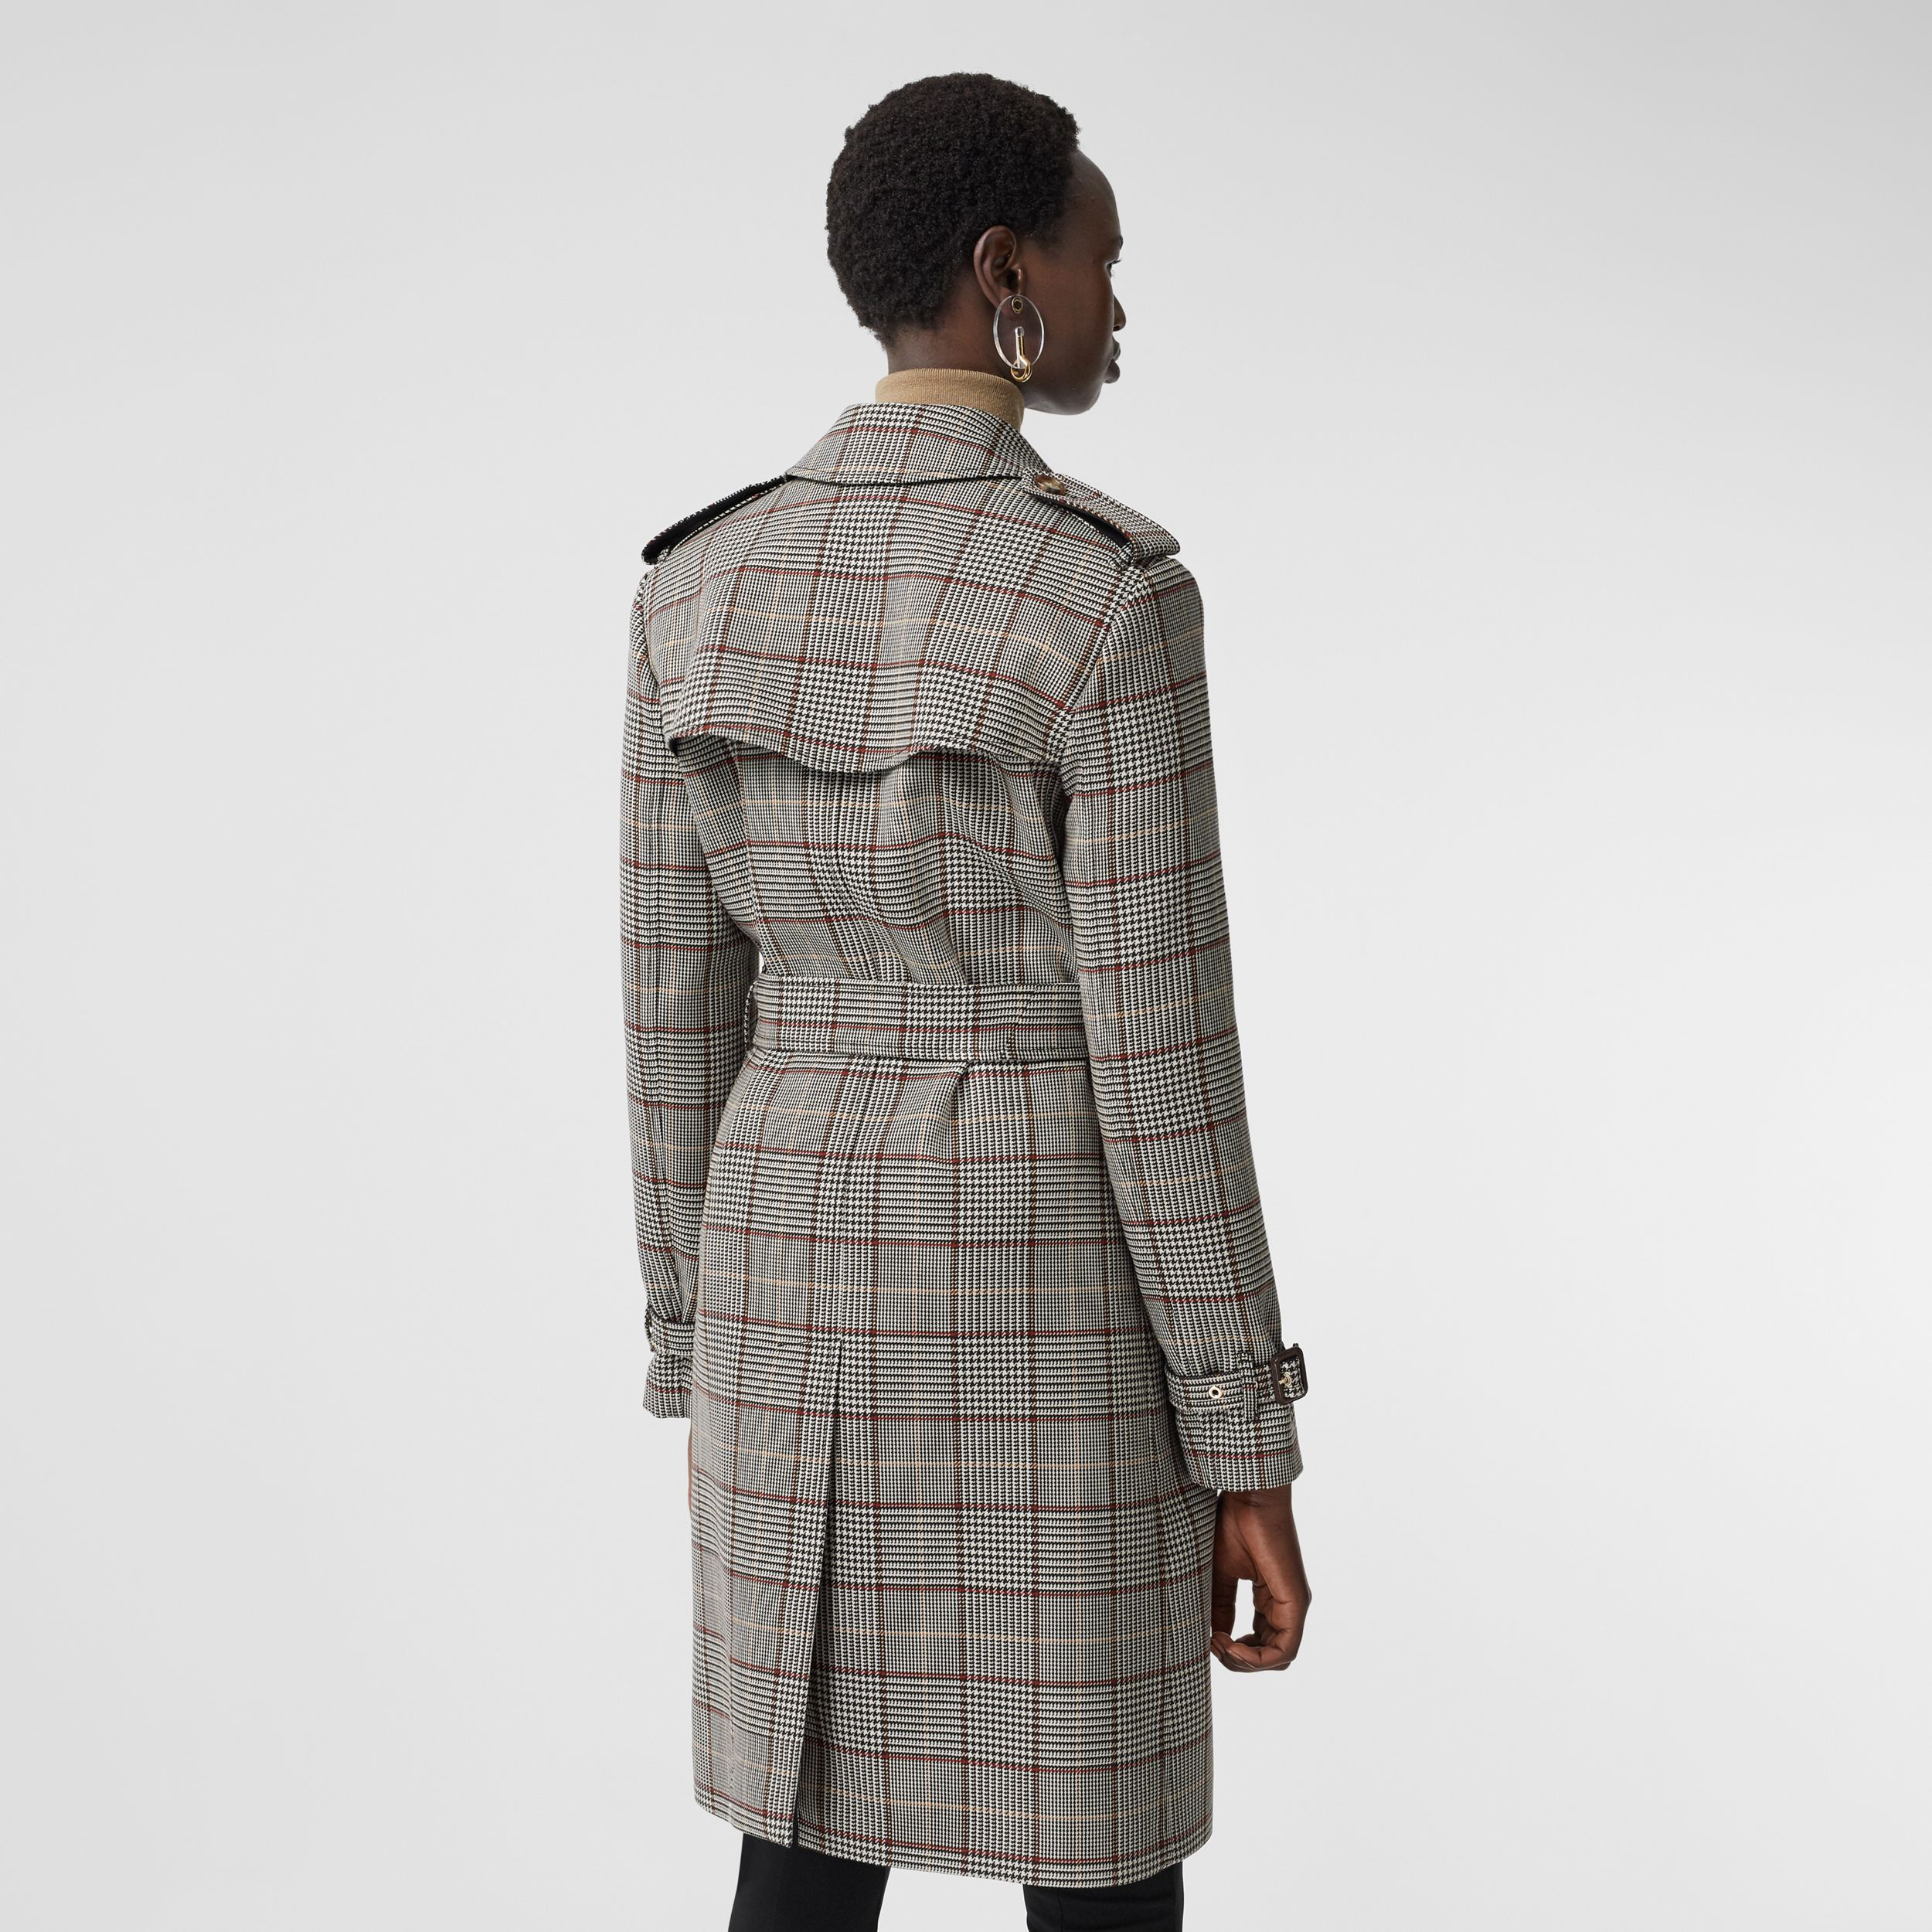 Prince of Wales Check Wool Trench Coat in Clove Brown - Women | Burberry Hong Kong S.A.R. - 3